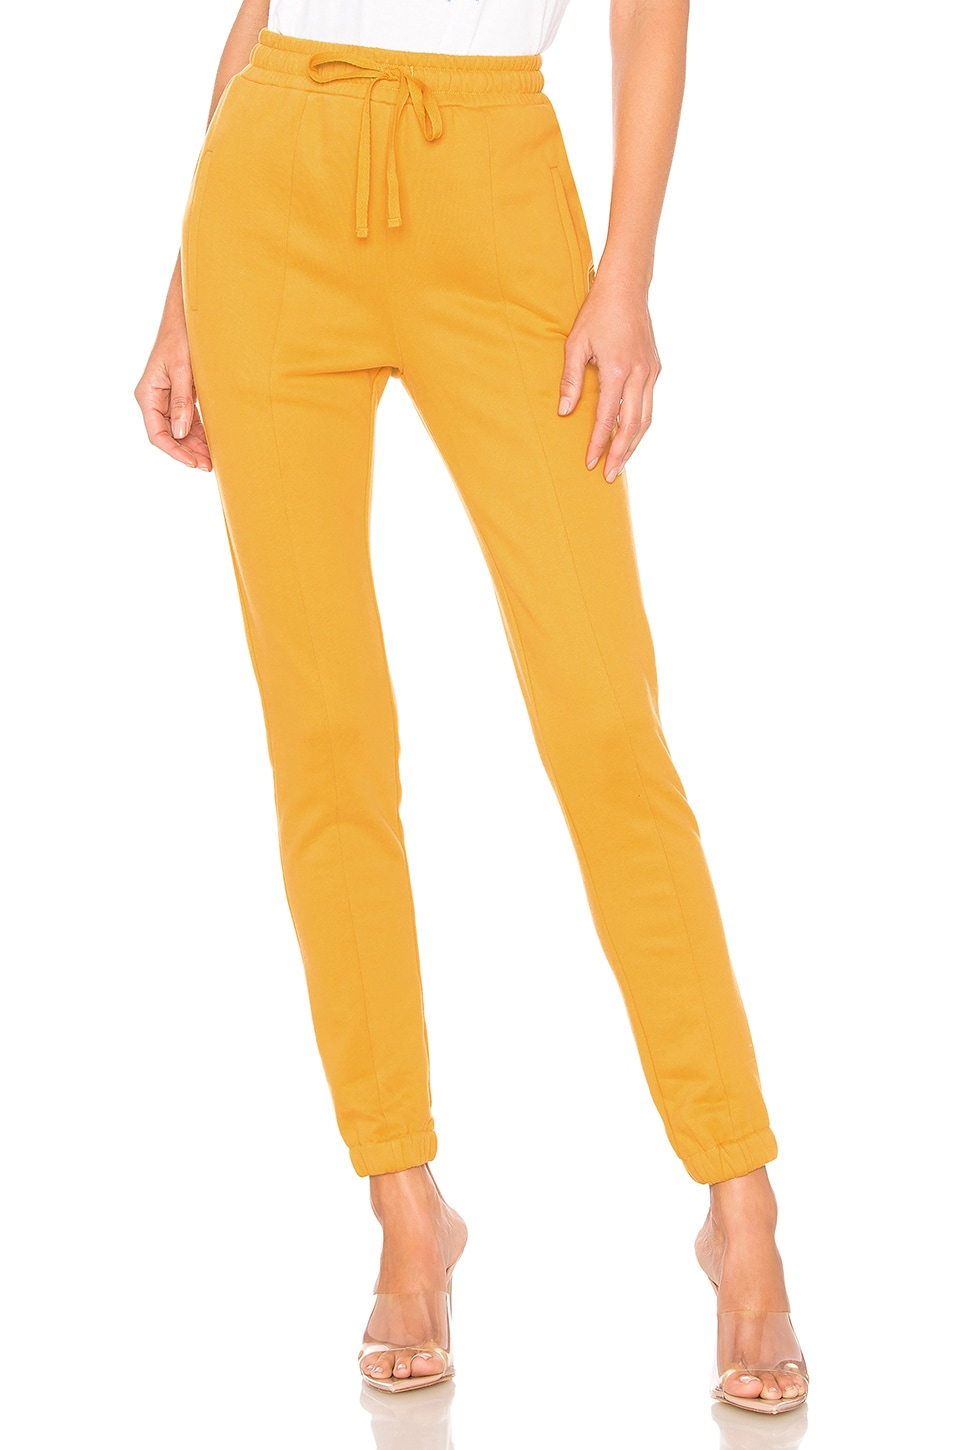 Tularosa Ren Sweatpants in Mustard